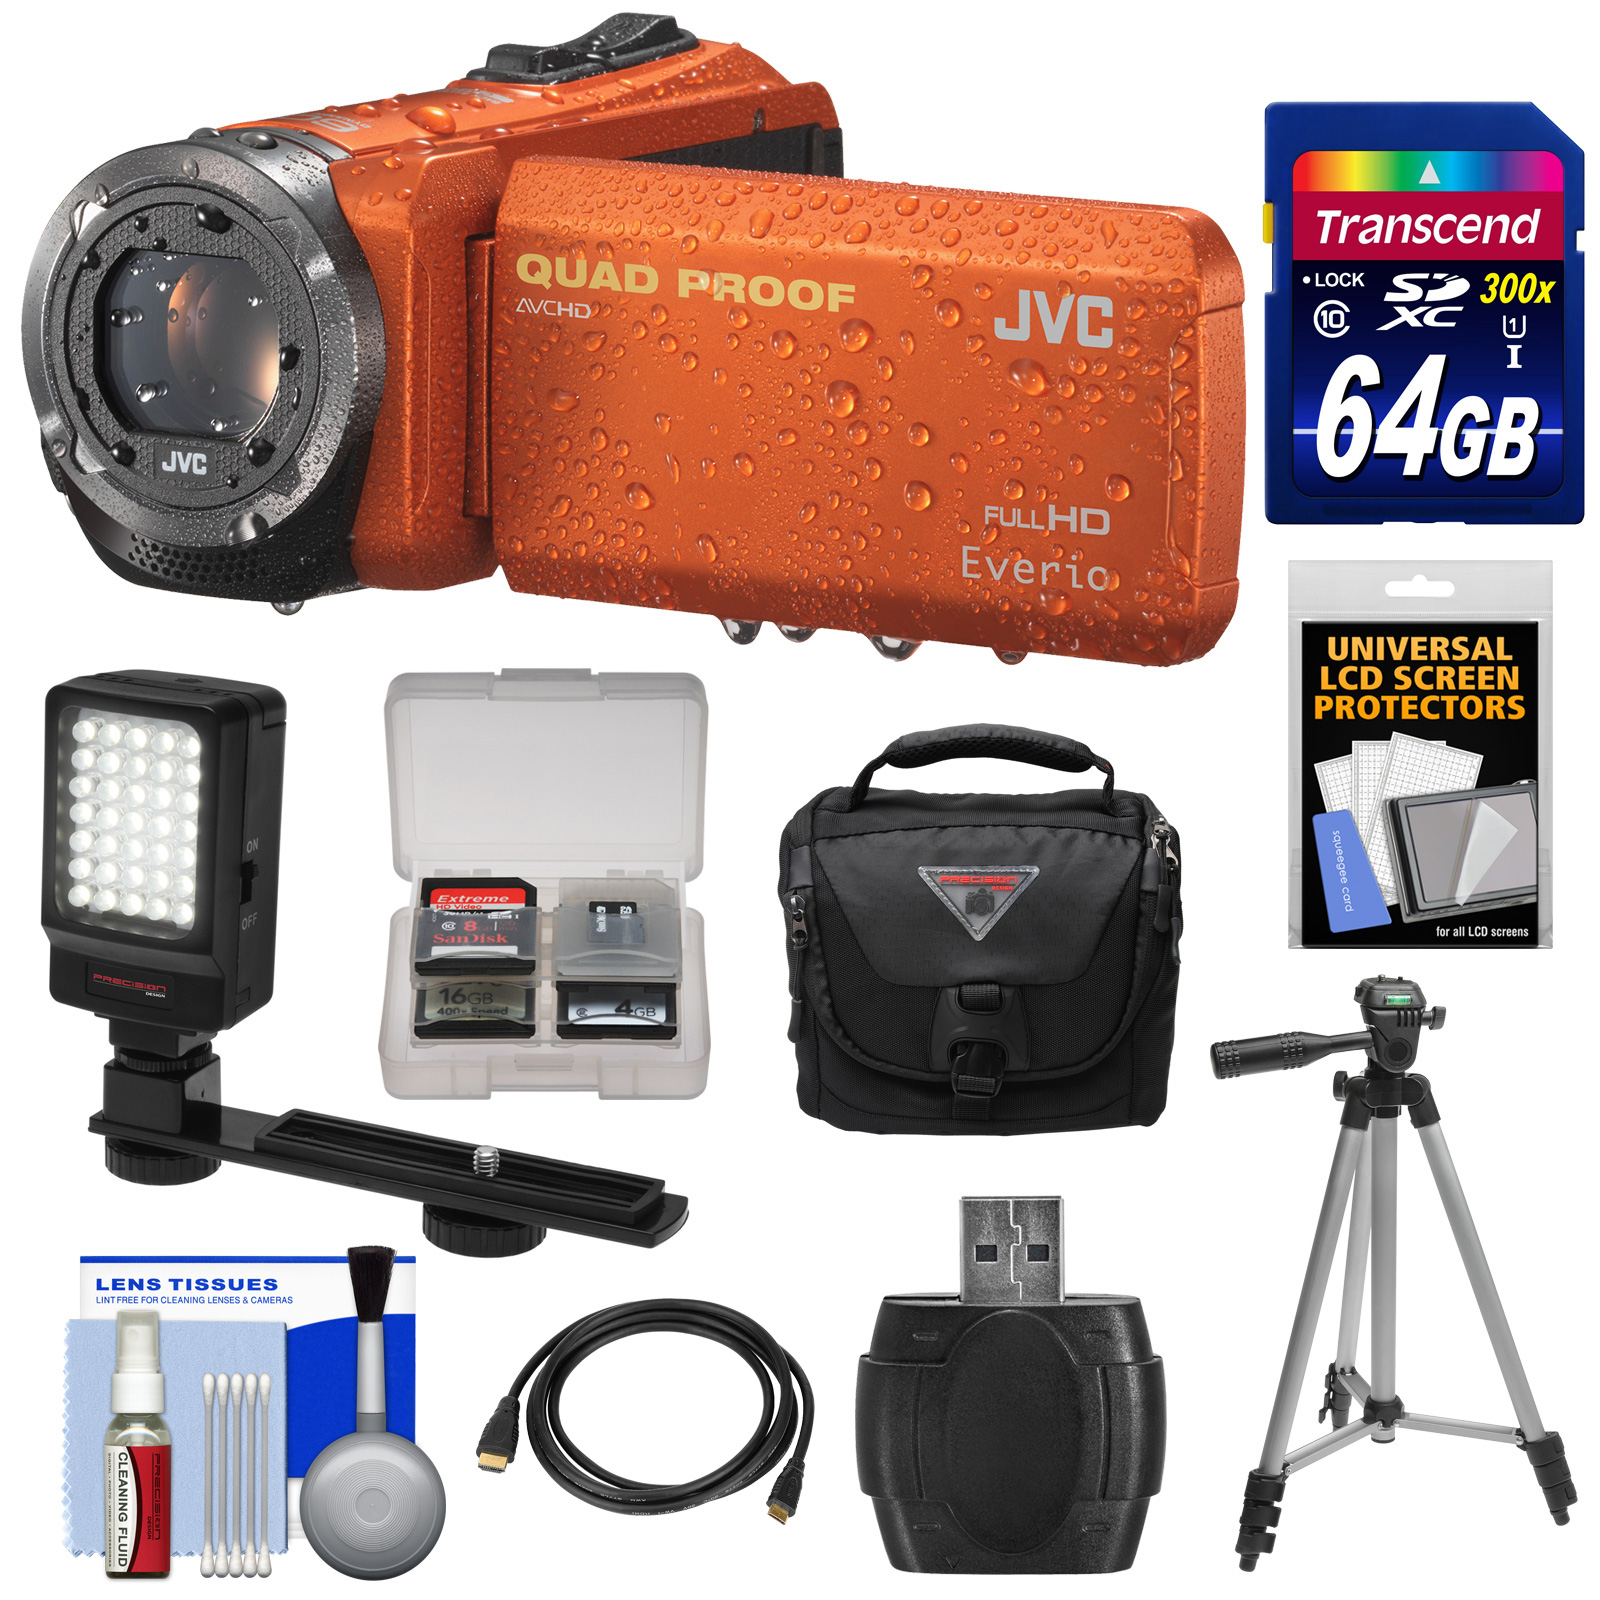 JVC Everio GZ-R320 Quad Proof Full HD Digital Video Camera Camcorder (Orange) with 64GB Card + Case + Tripod + LED Light + Kit